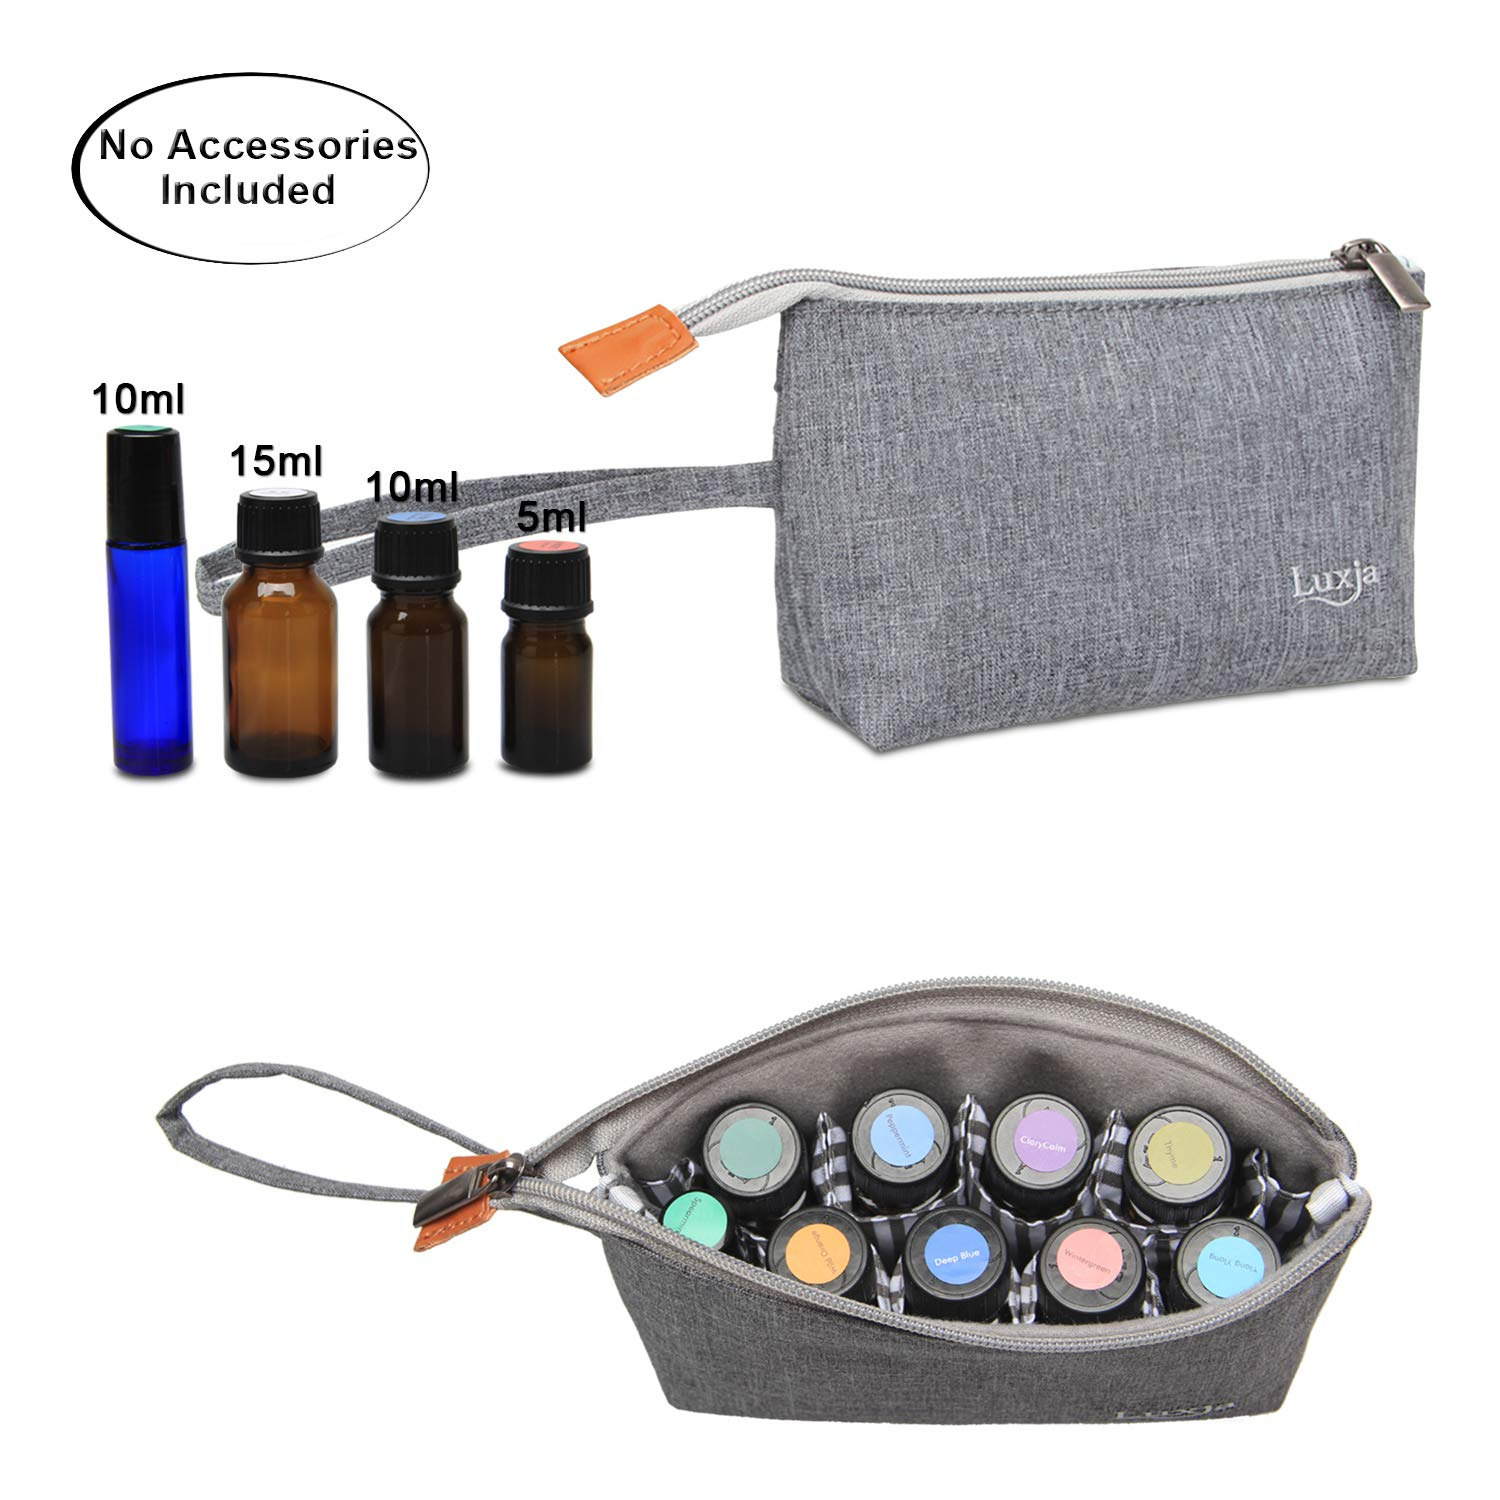 Luxja Essential Oil Carrying Bag - Holds 9 Bottles (5ml-15ml, Including Roller Bottles), Portable Organizer for Essential Oil and Small Accessories, Purple